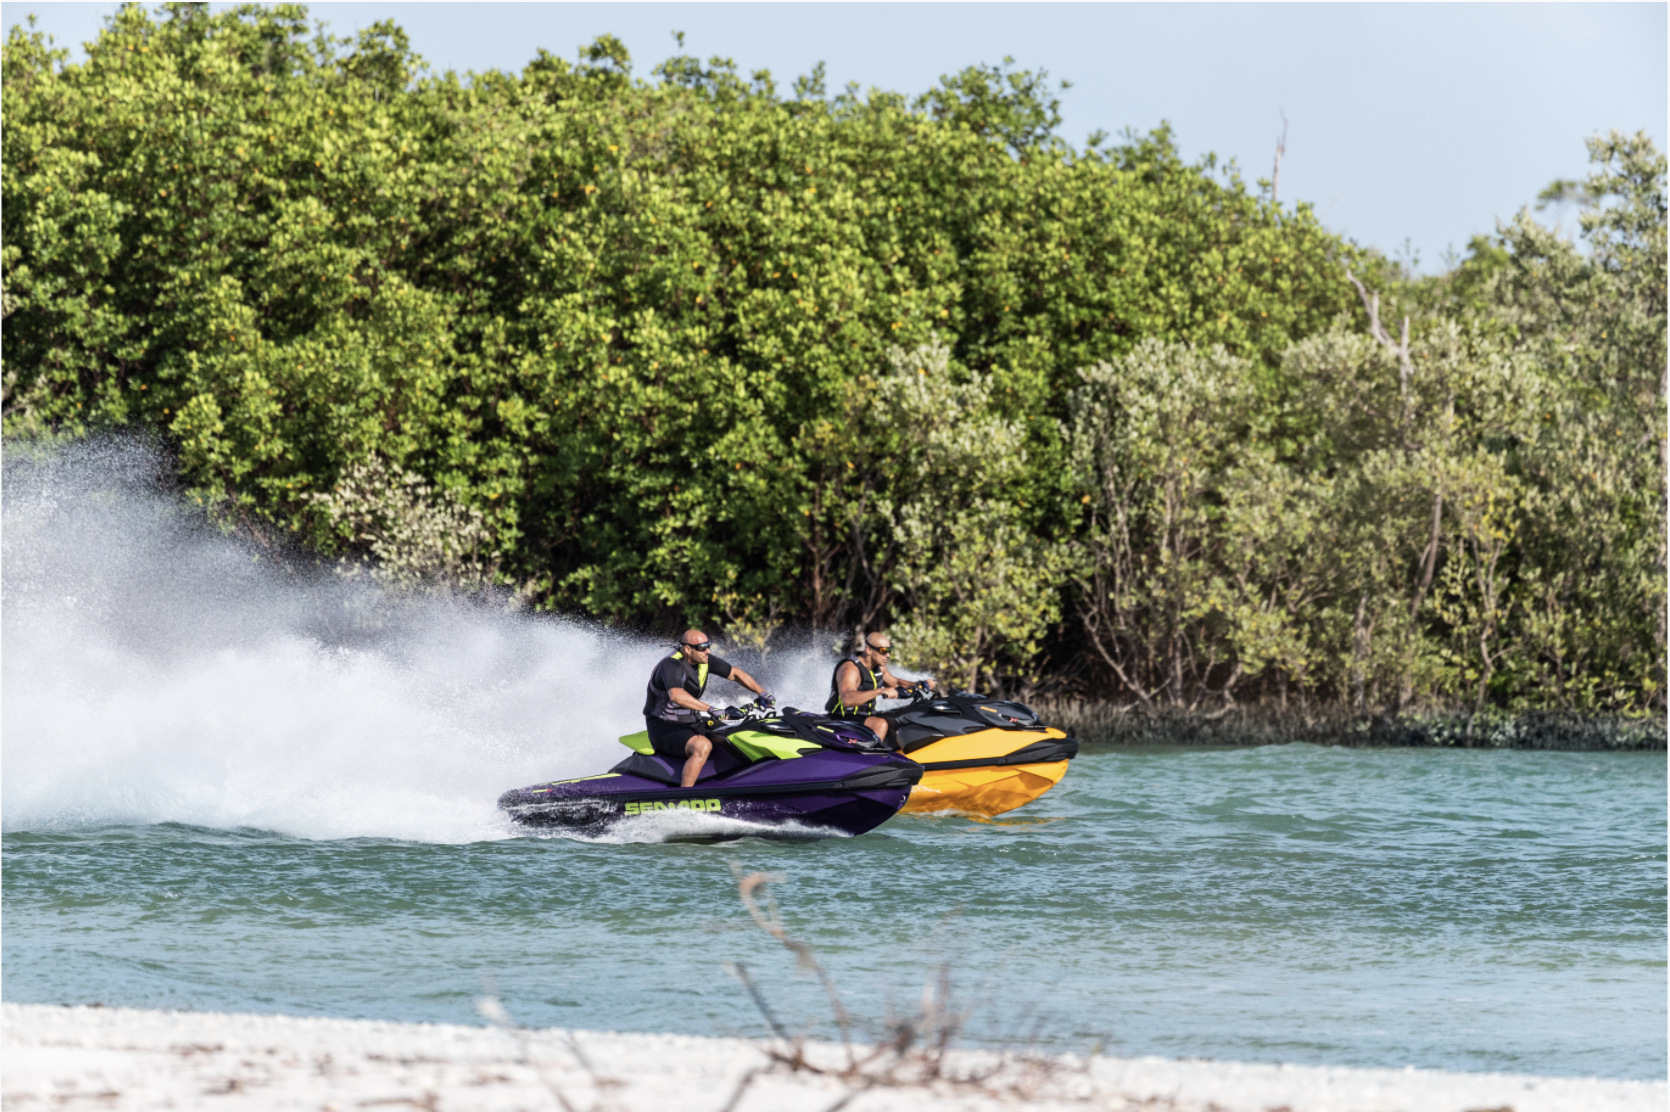 SEA-DOO DEMO DAY - 20.03.21